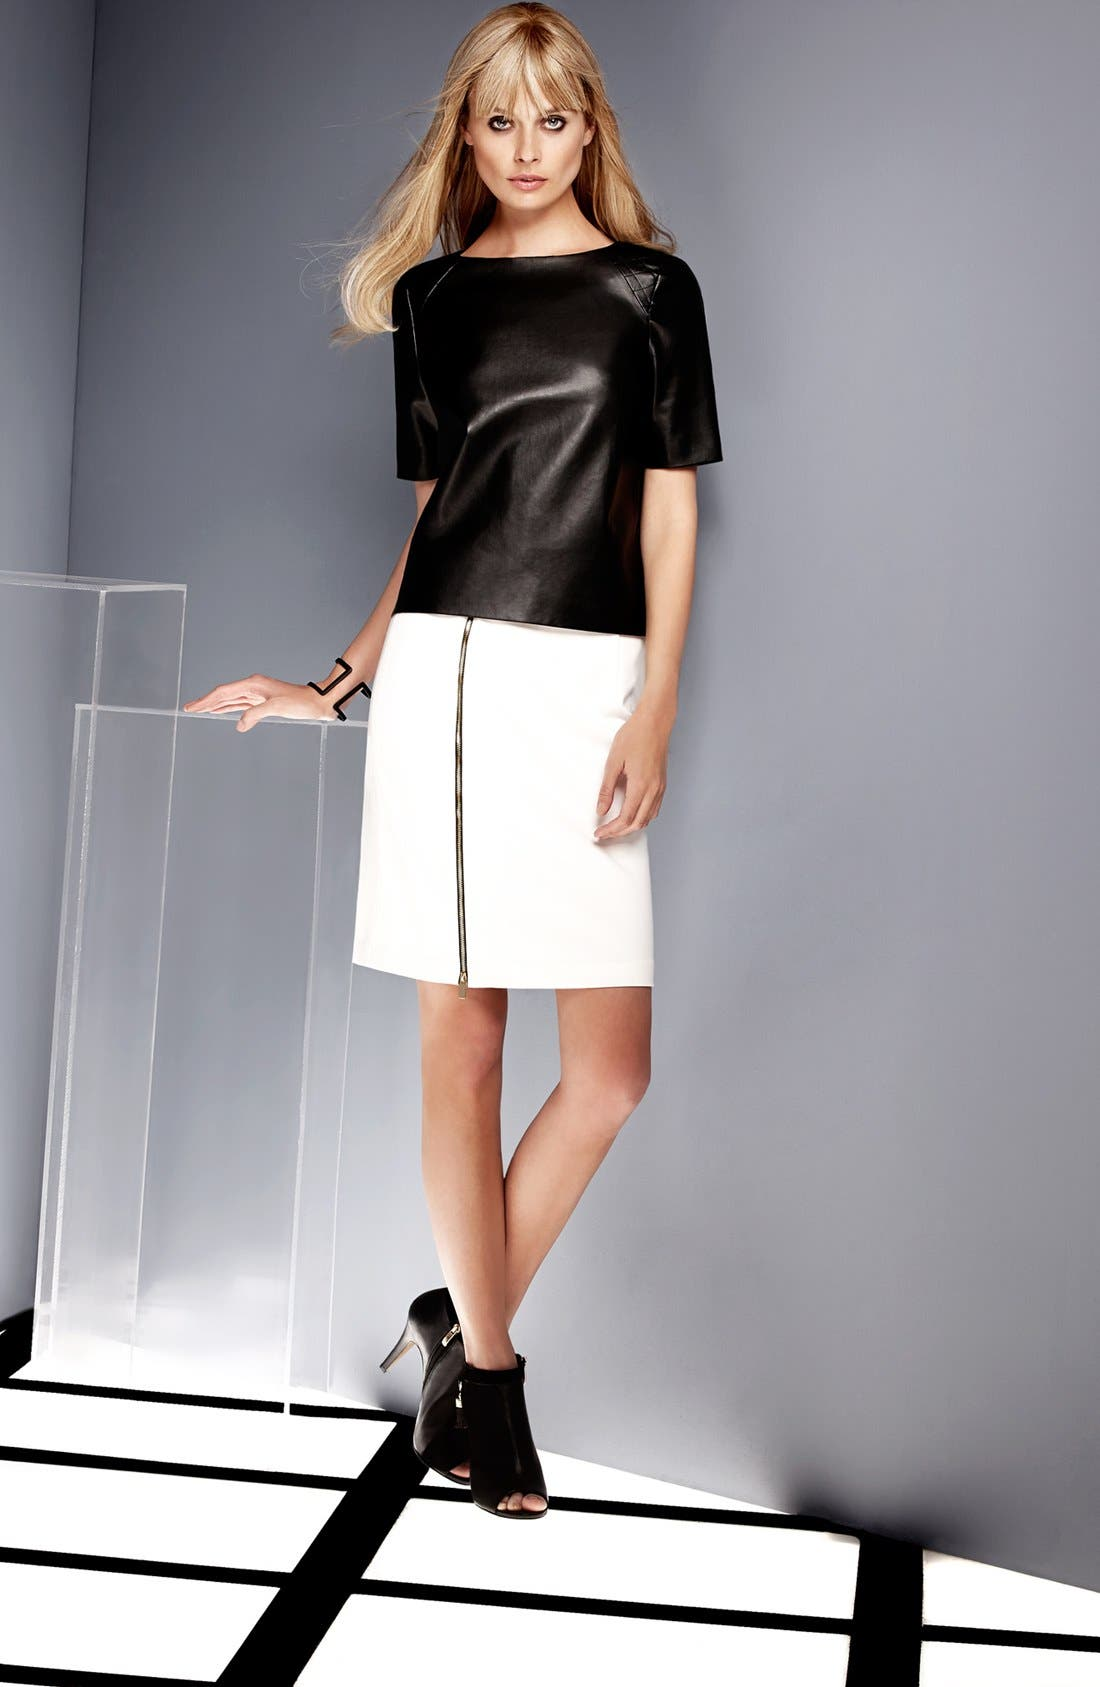 Main Image - Vince Camuto Faux Leather Top & Skirt